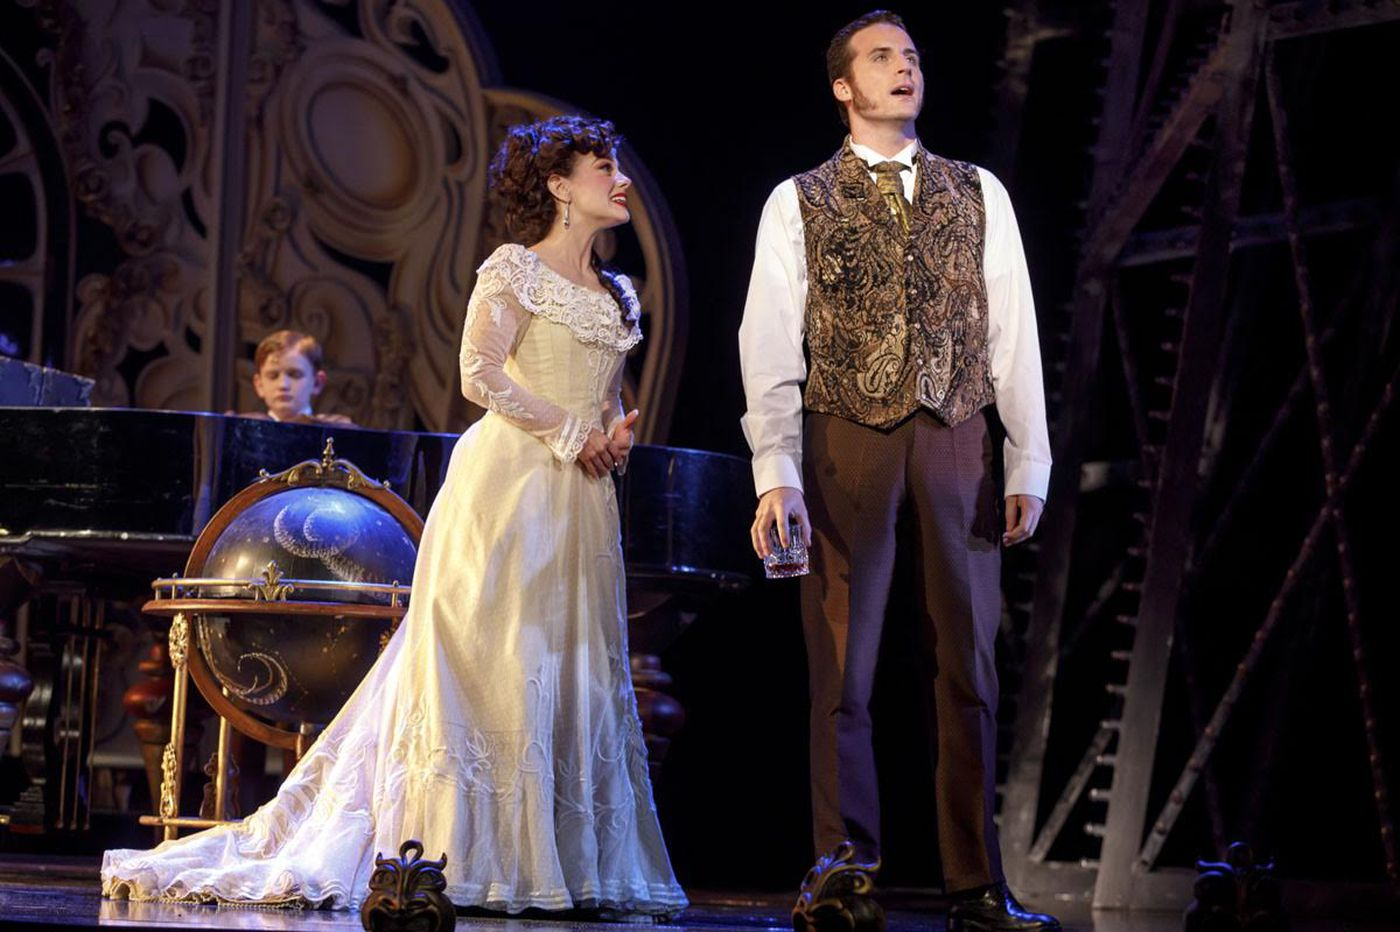 National tour of 'Love Never Dies,' sequel to 'Phantom,' comes to Academy of Music, with a Philly boy in the cast